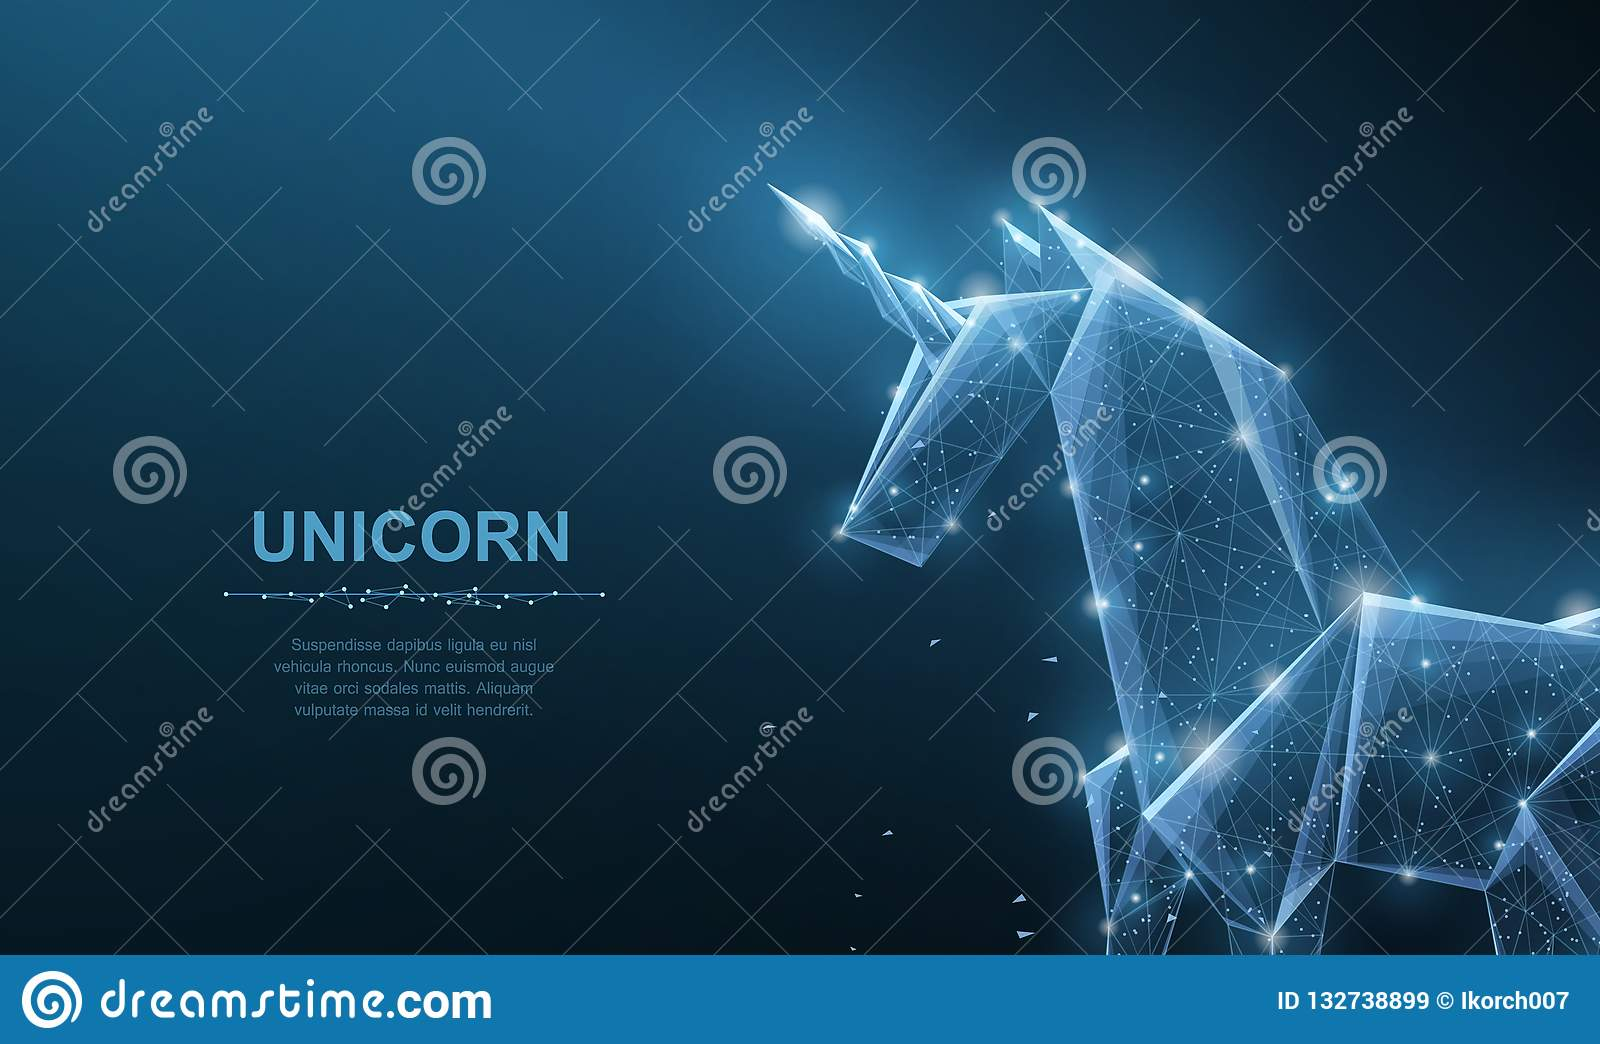 Unicorn Abstract Vector Origami Paper Unicorn Isoleted On Blue Magic Fantasy Horse Dream Miracle Believe Wish Stock Vector Illustration Of Fantasy Graphic 132738899